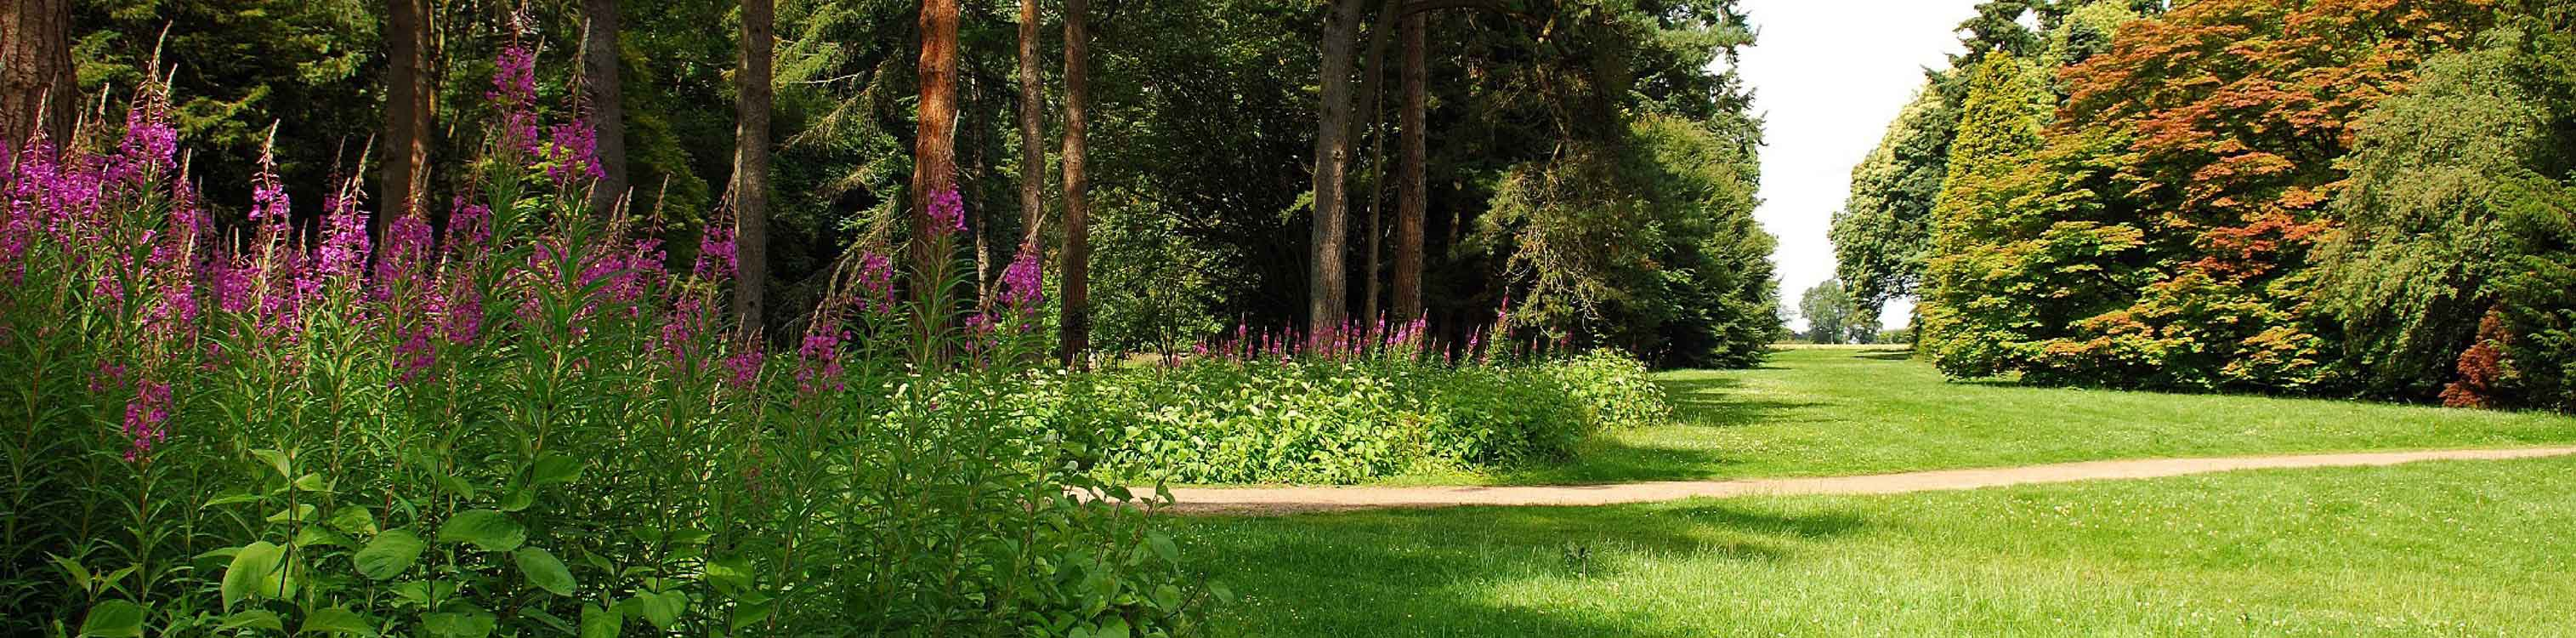 A grass path bordered by green bushes and pink flowers